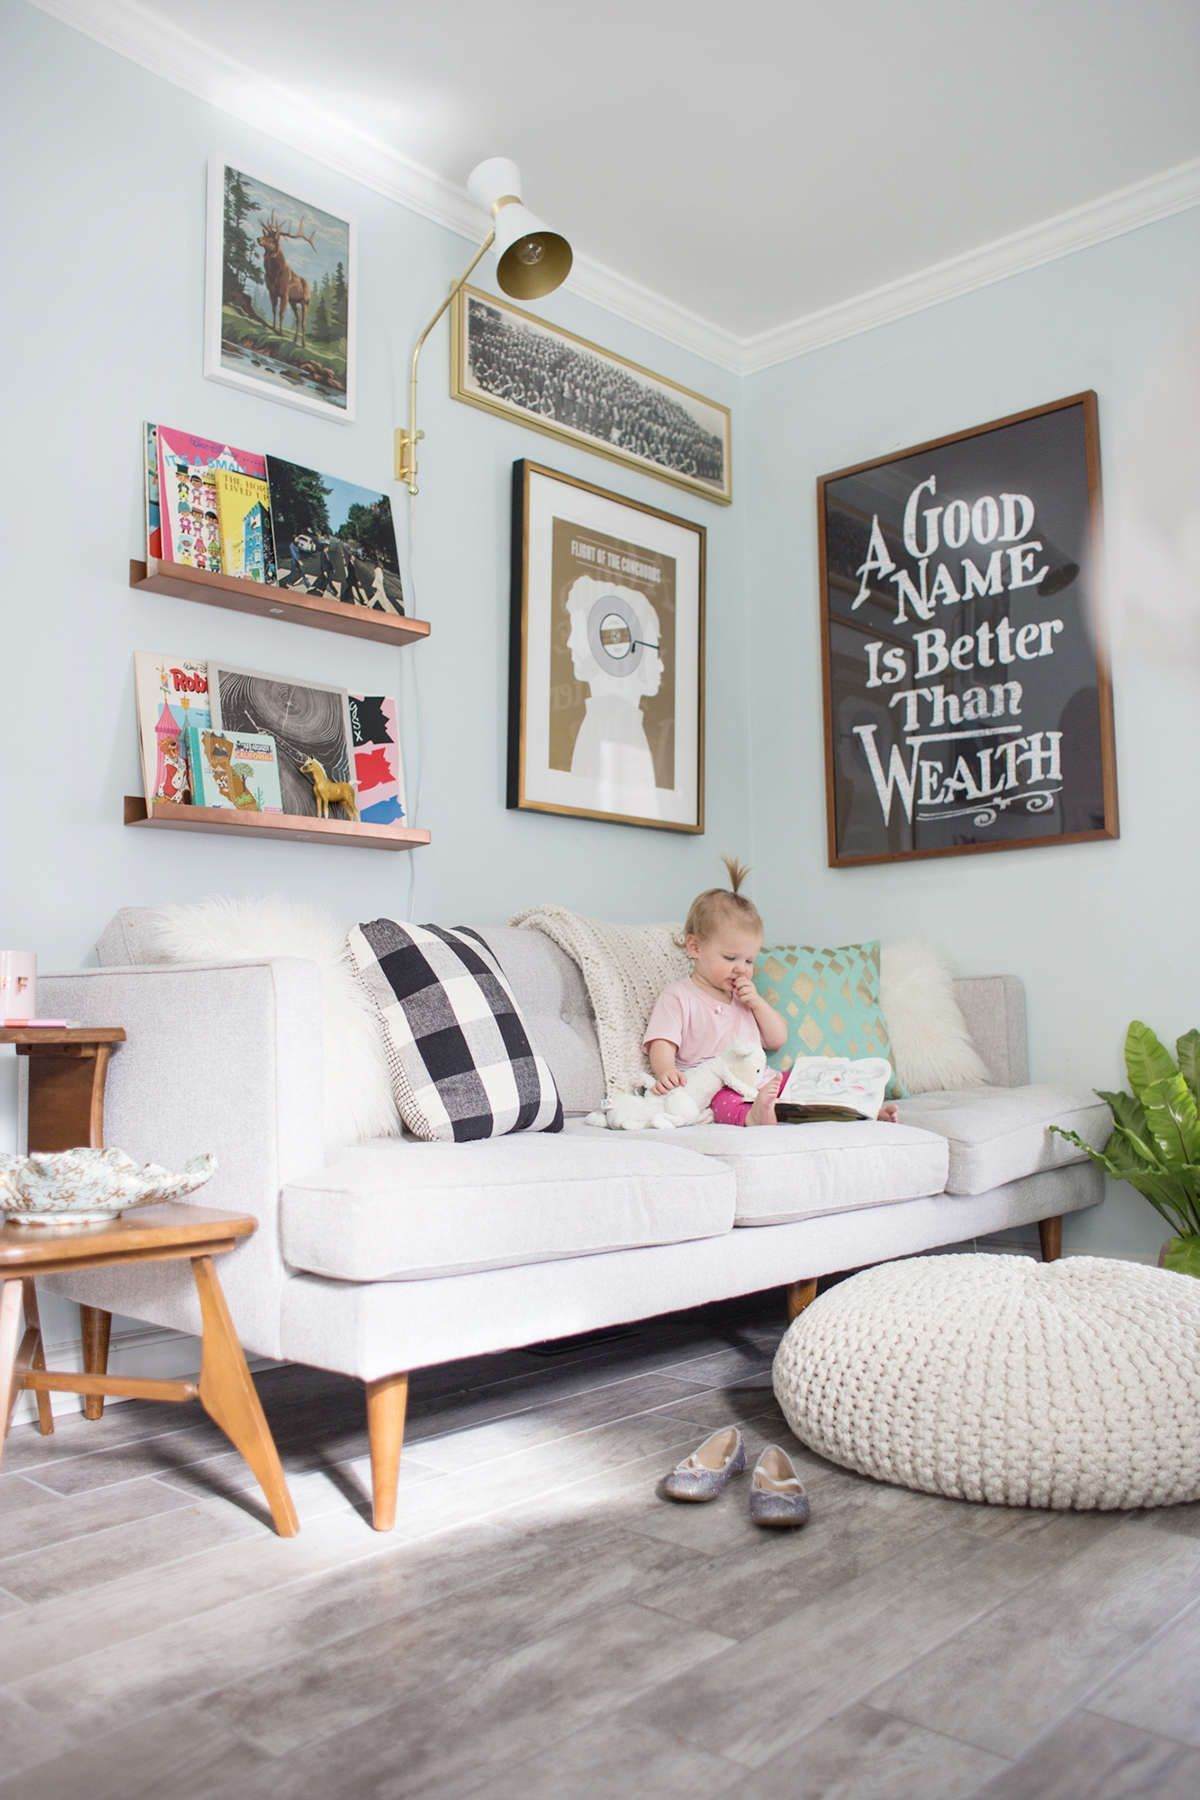 5 Beautiful Family Room Ideas With Images Kid Friendly Living